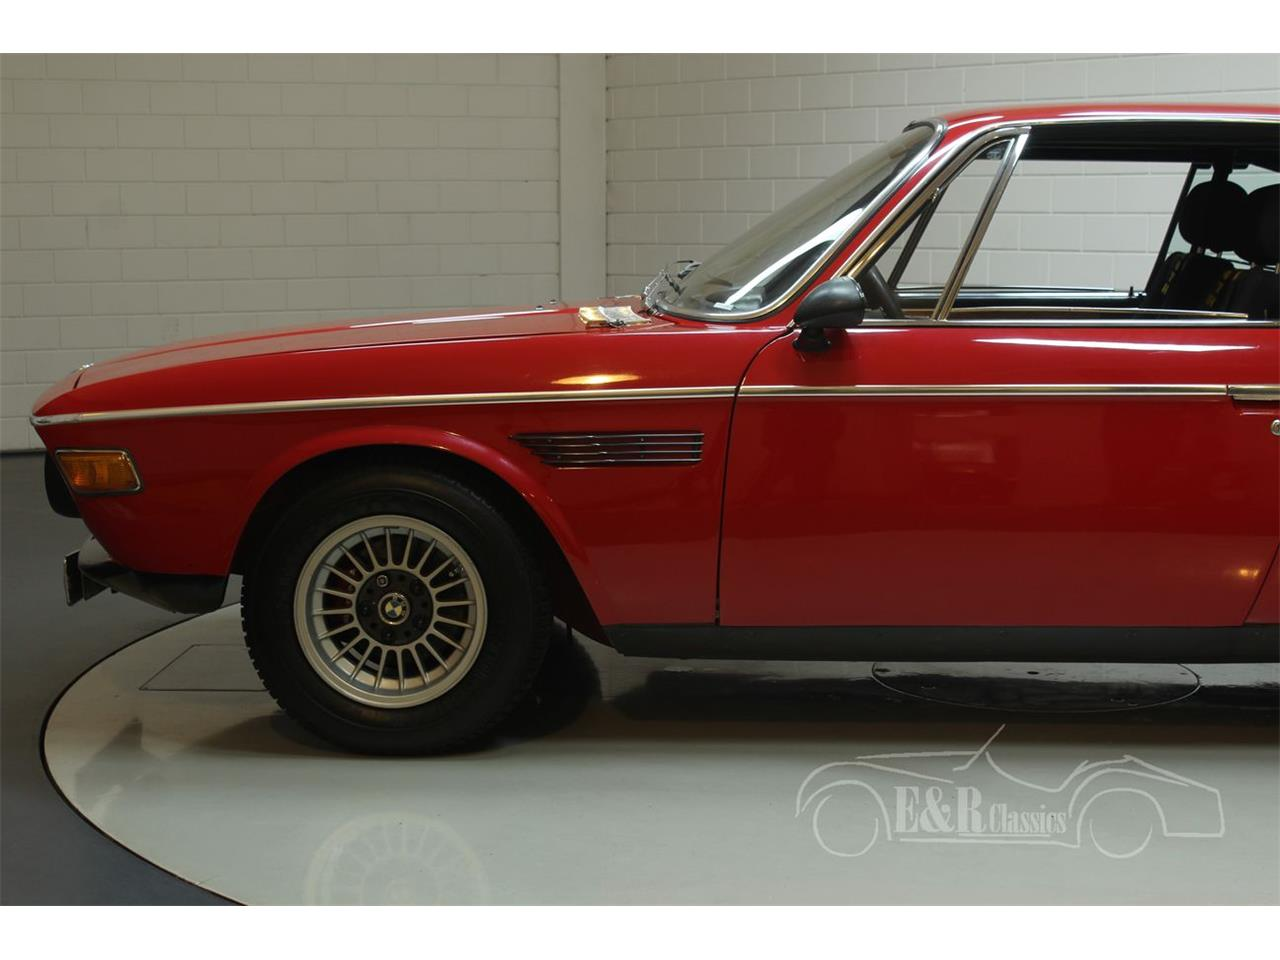 Large Picture of Classic 1973 BMW 3.0CSL located in Noord-Brabant Offered by E & R Classics - PH42